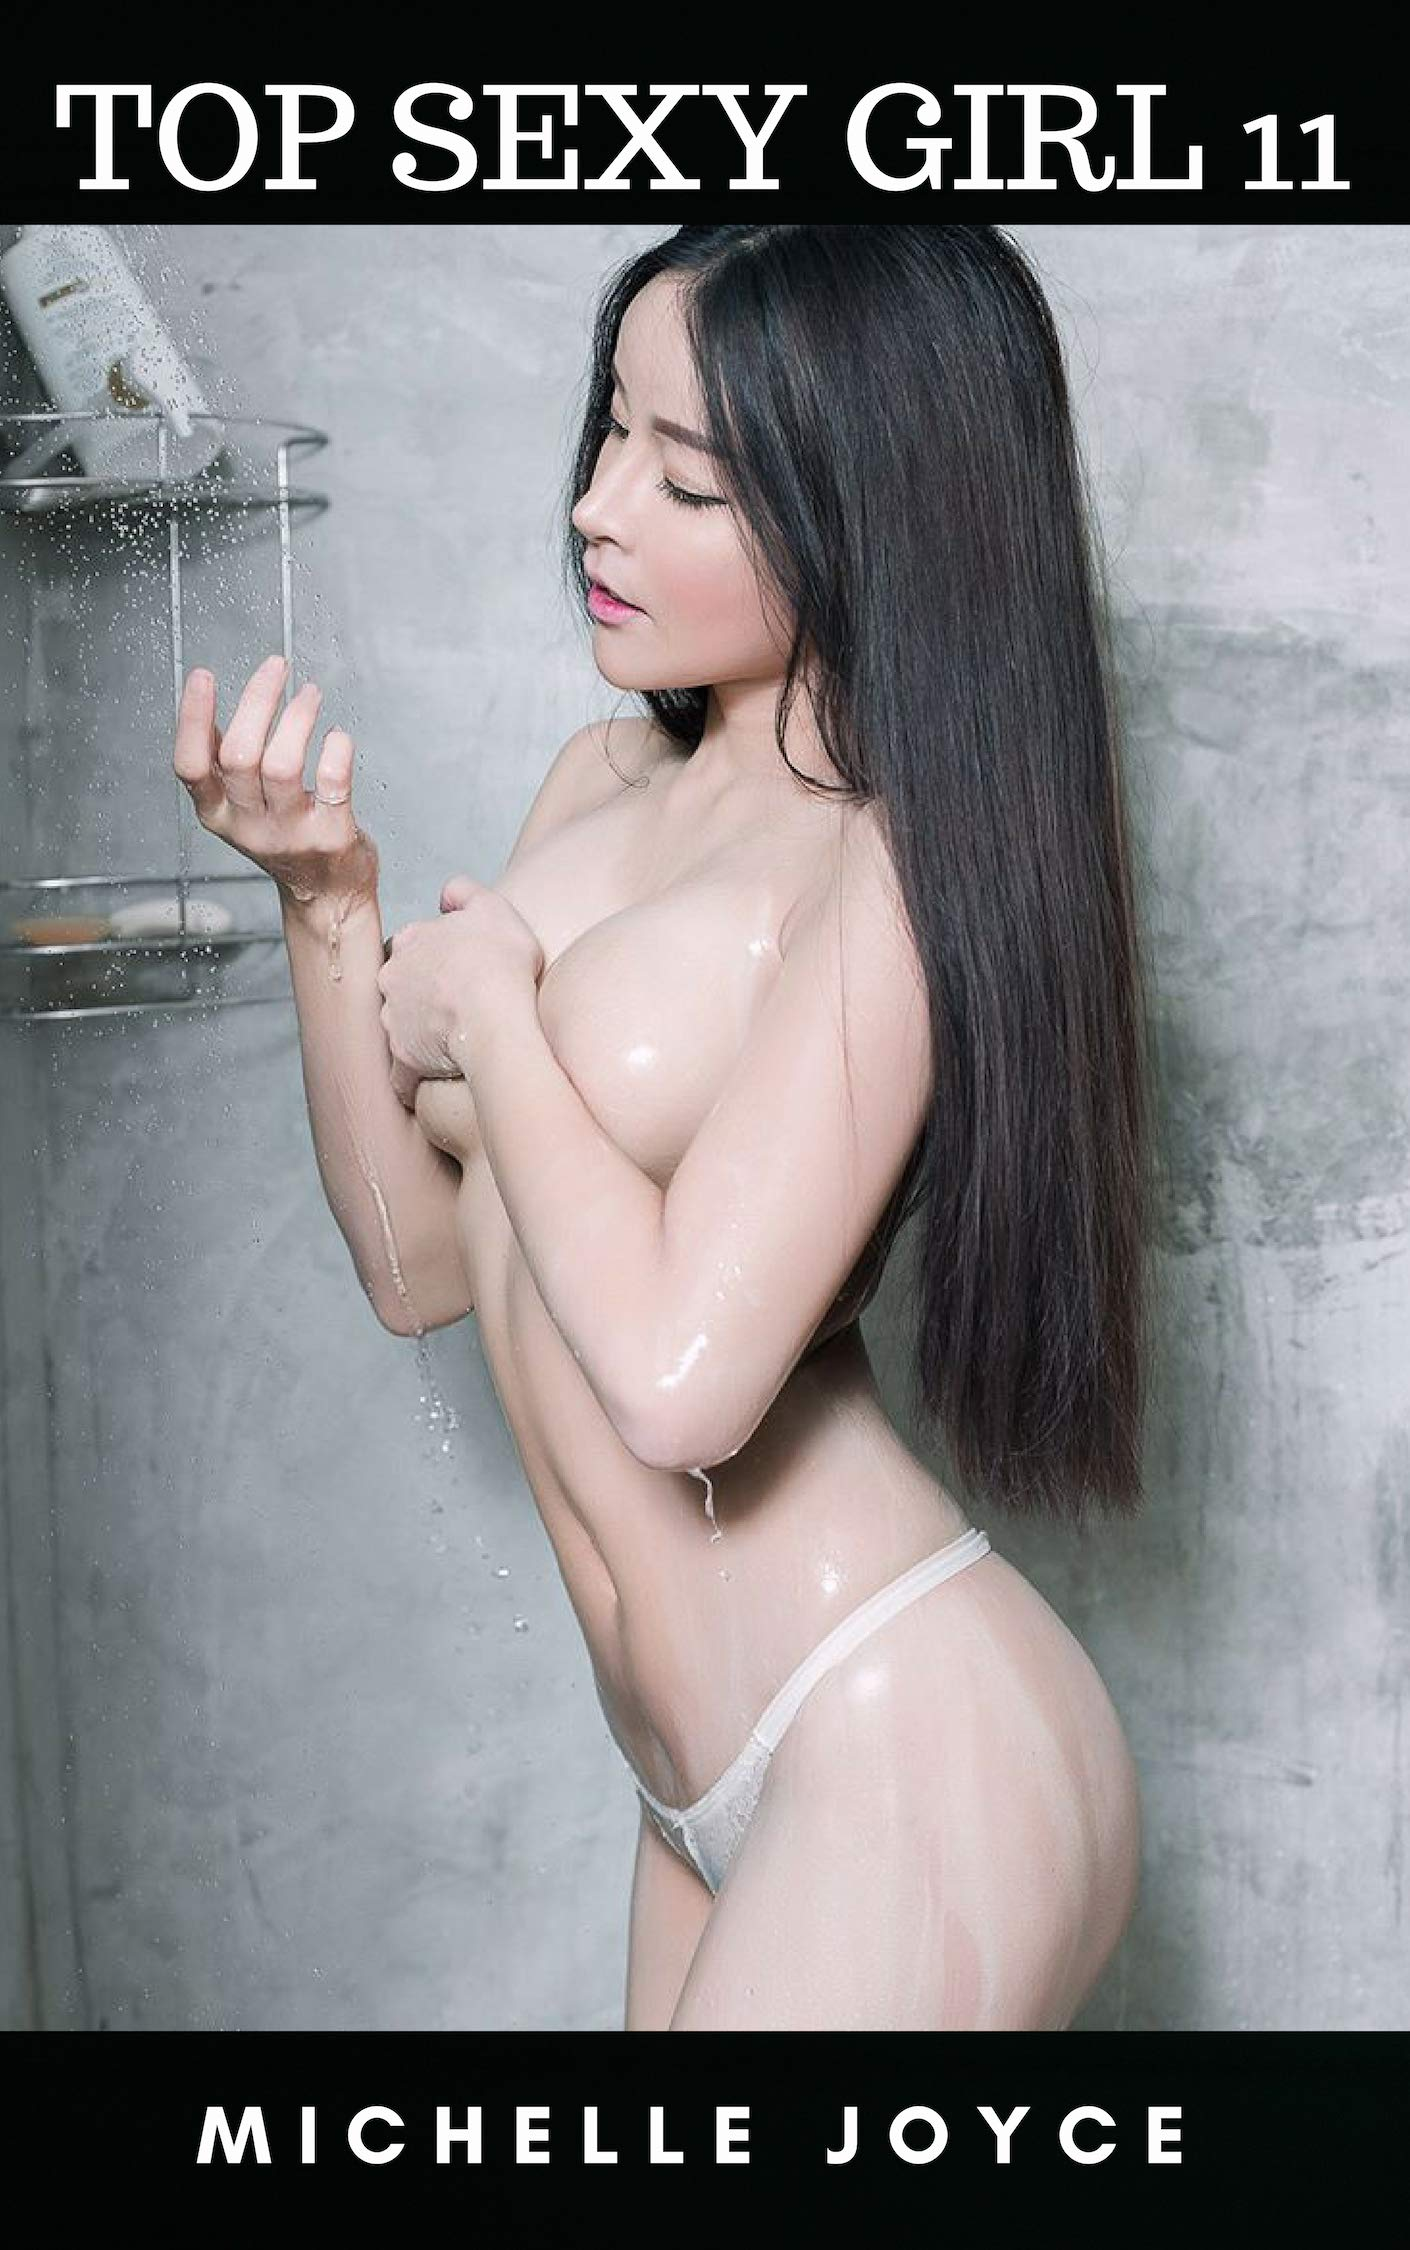 TOP SEXY GIRL 11: Non-Nude Erotic Photo Book